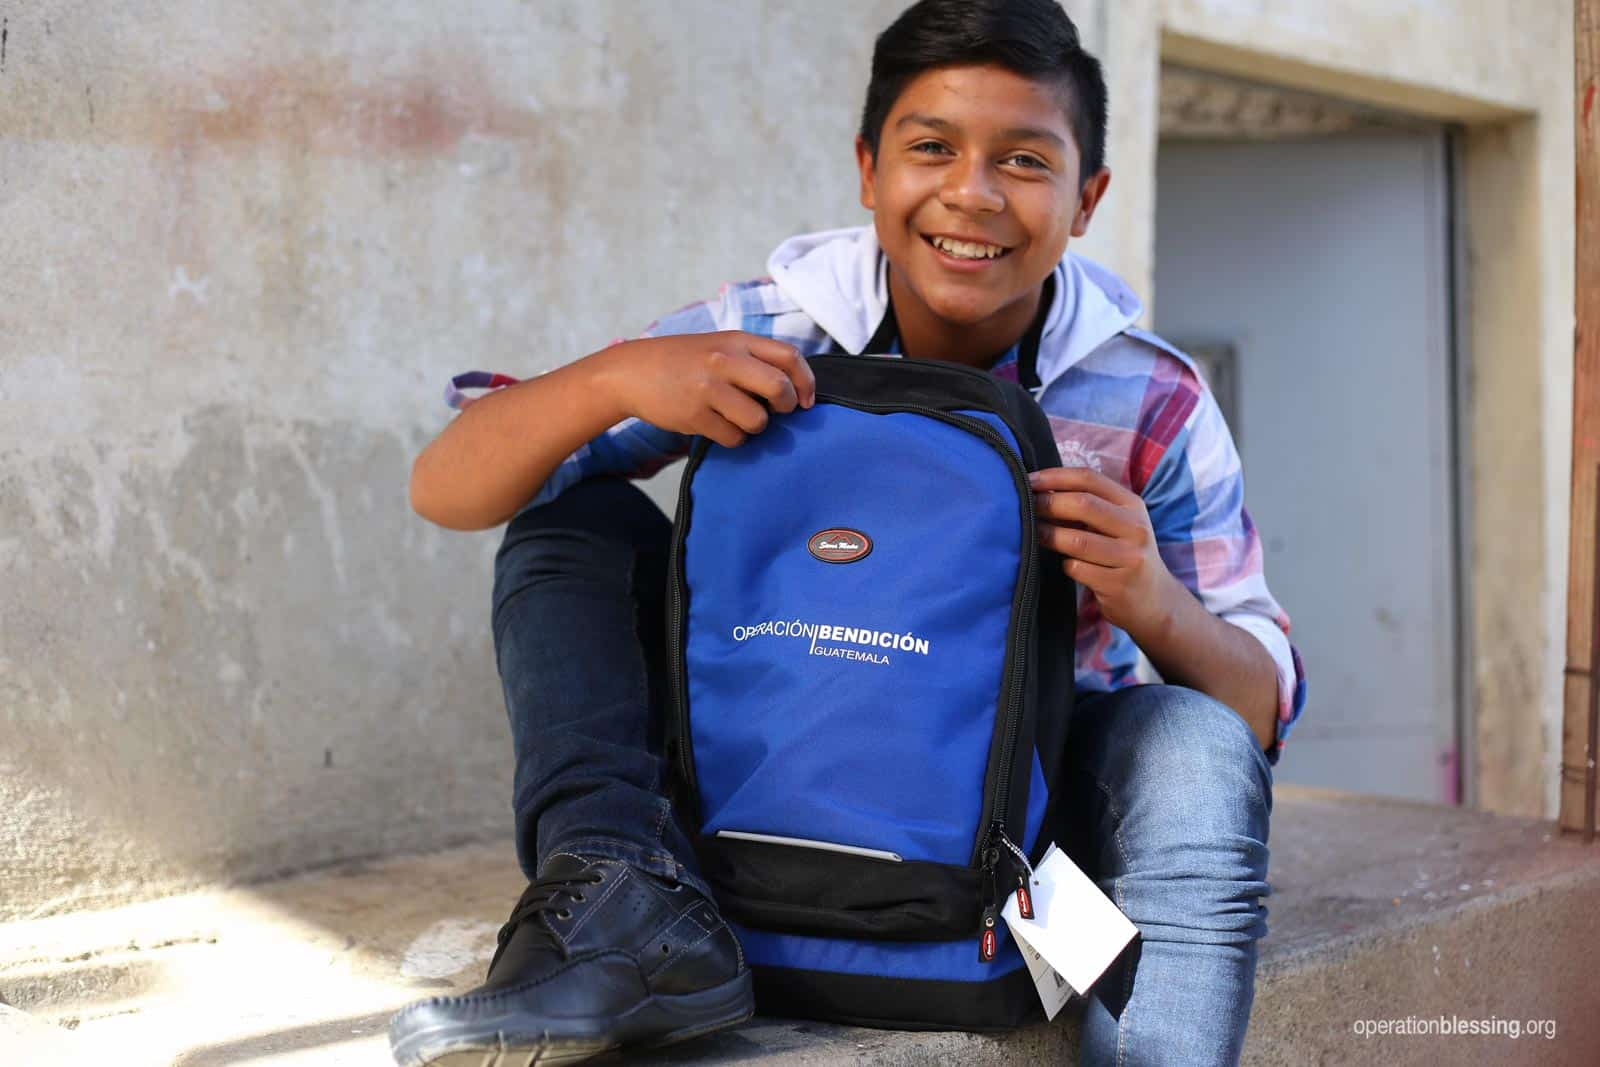 Edinson shows off the new school supplies and brand new shoes he received from OBI.